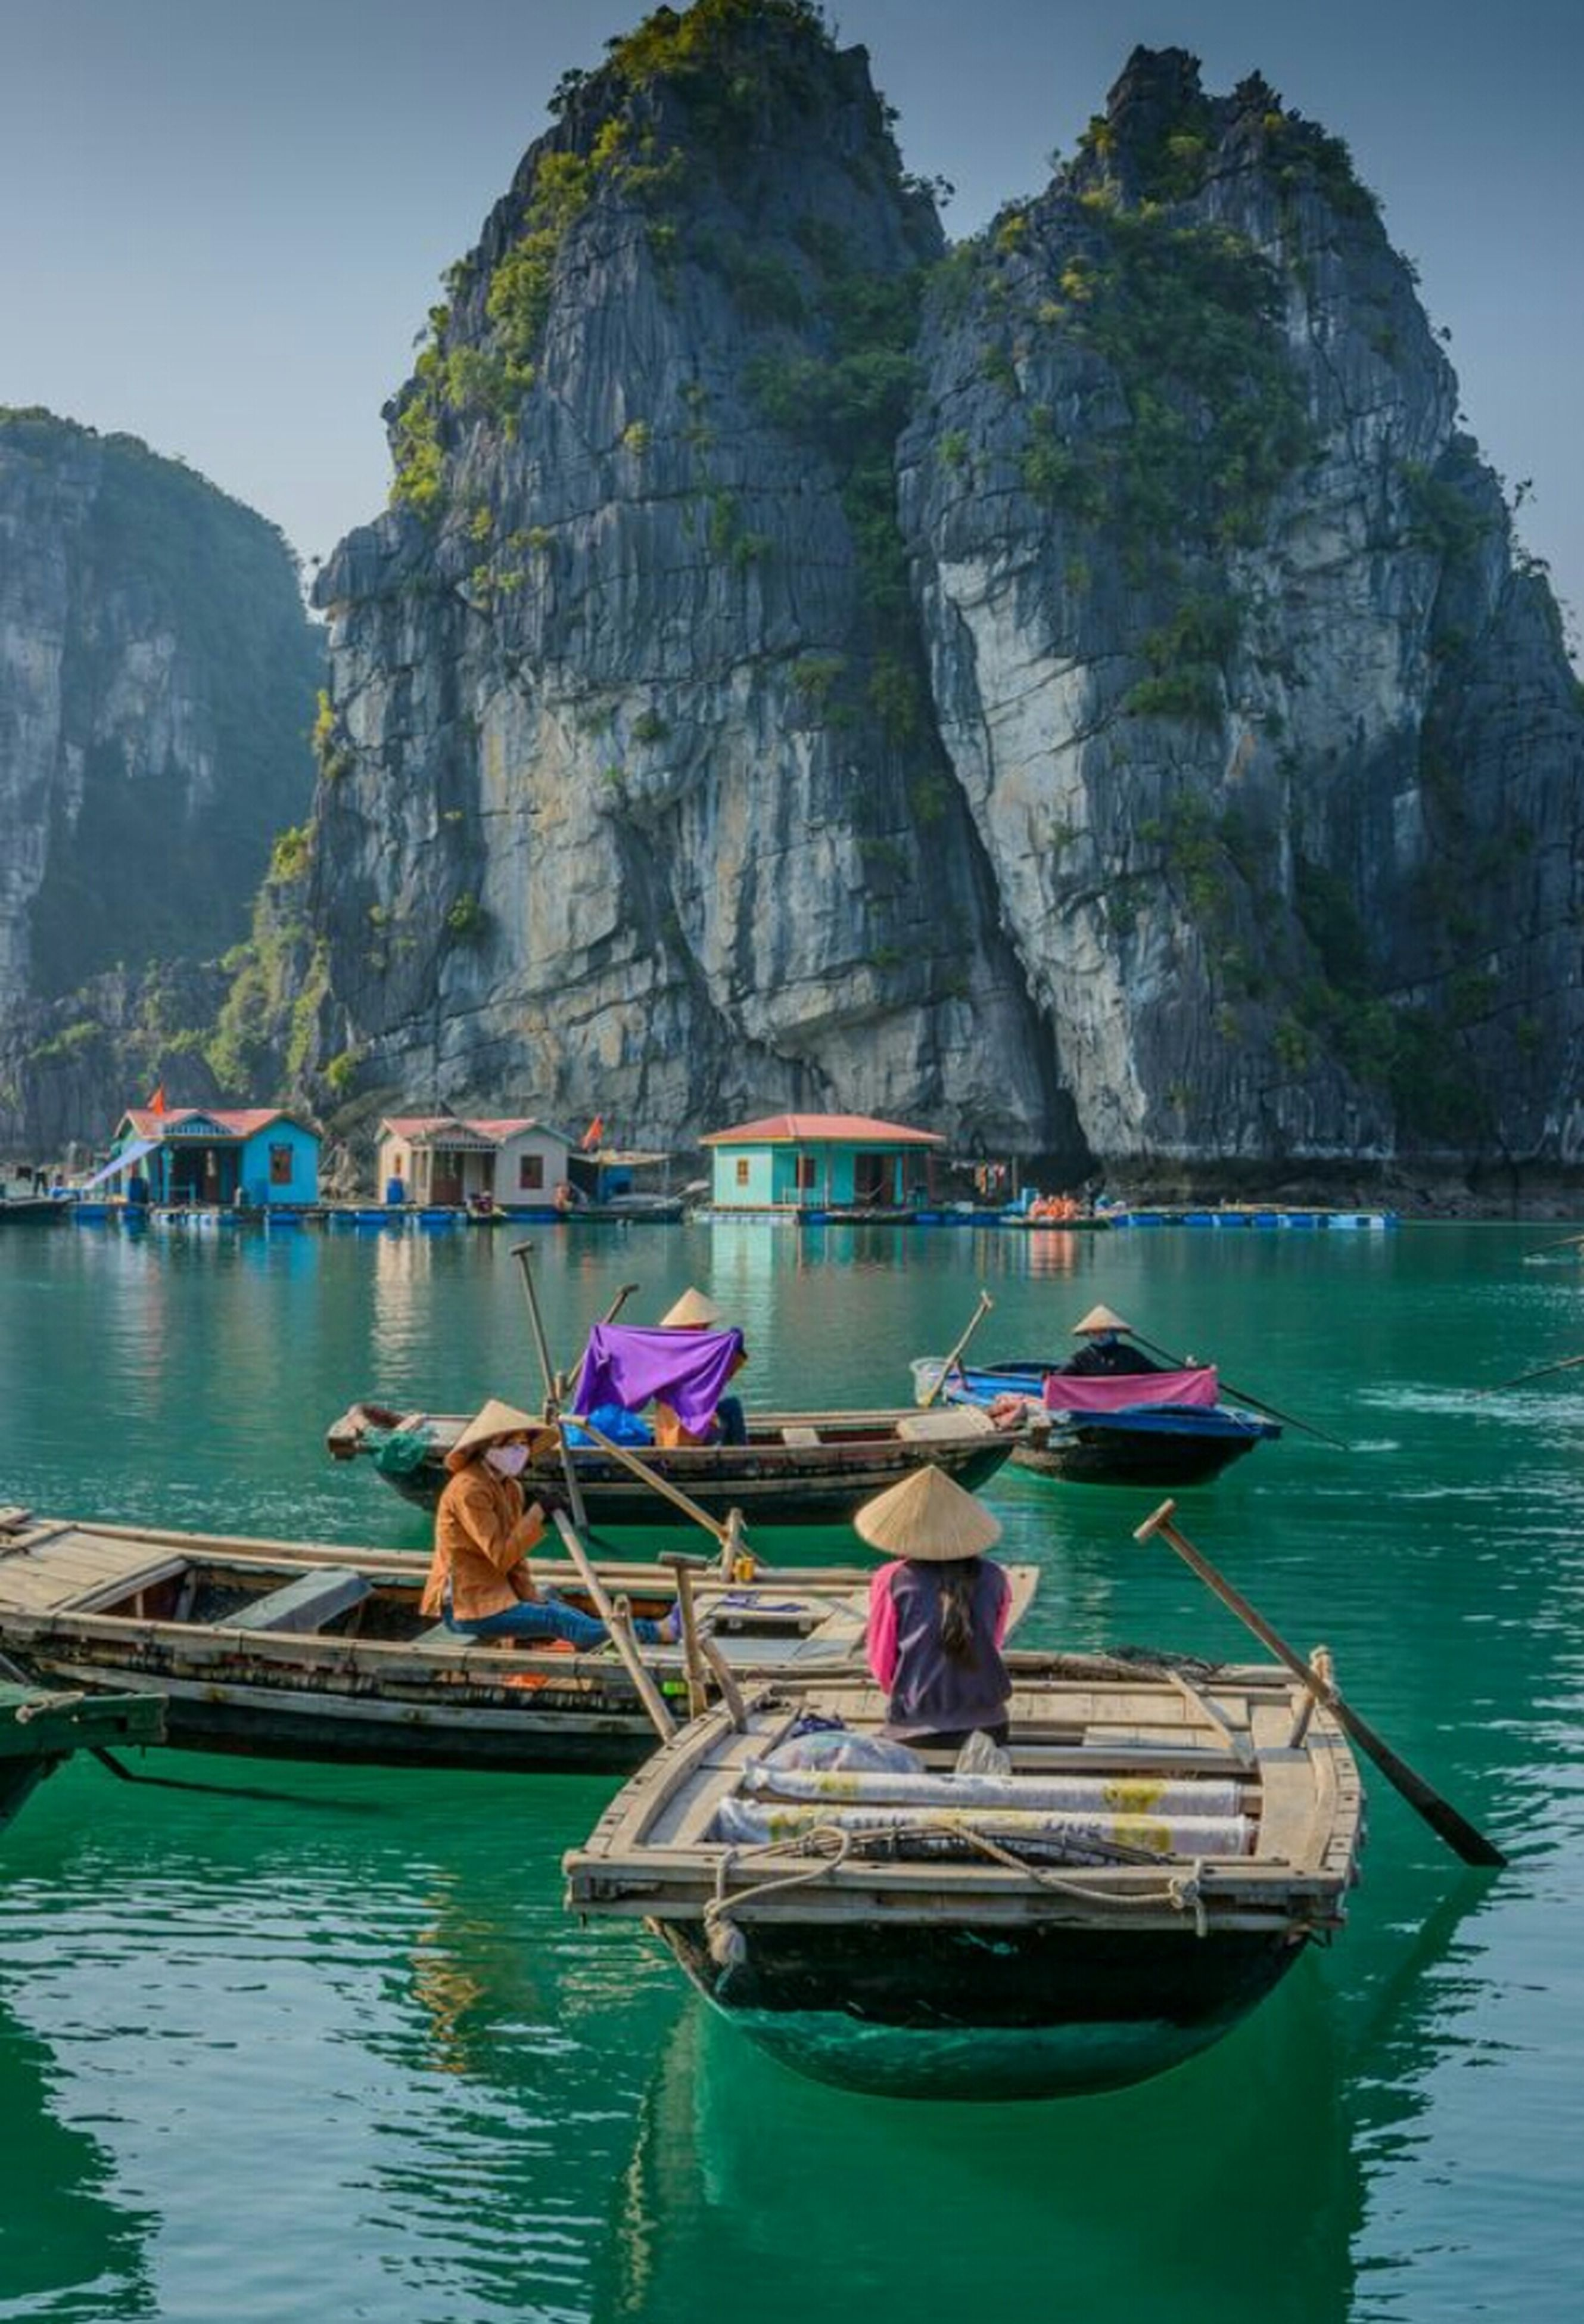 nautical vessel, transportation, mode of transport, moored, rock formation, mountain, rock - object, outdoors, day, oar, water, cliff, travel destinations, scenics, nature, sea, gondola - traditional boat, rowing, adult, longtail boat, people, one person, adults only